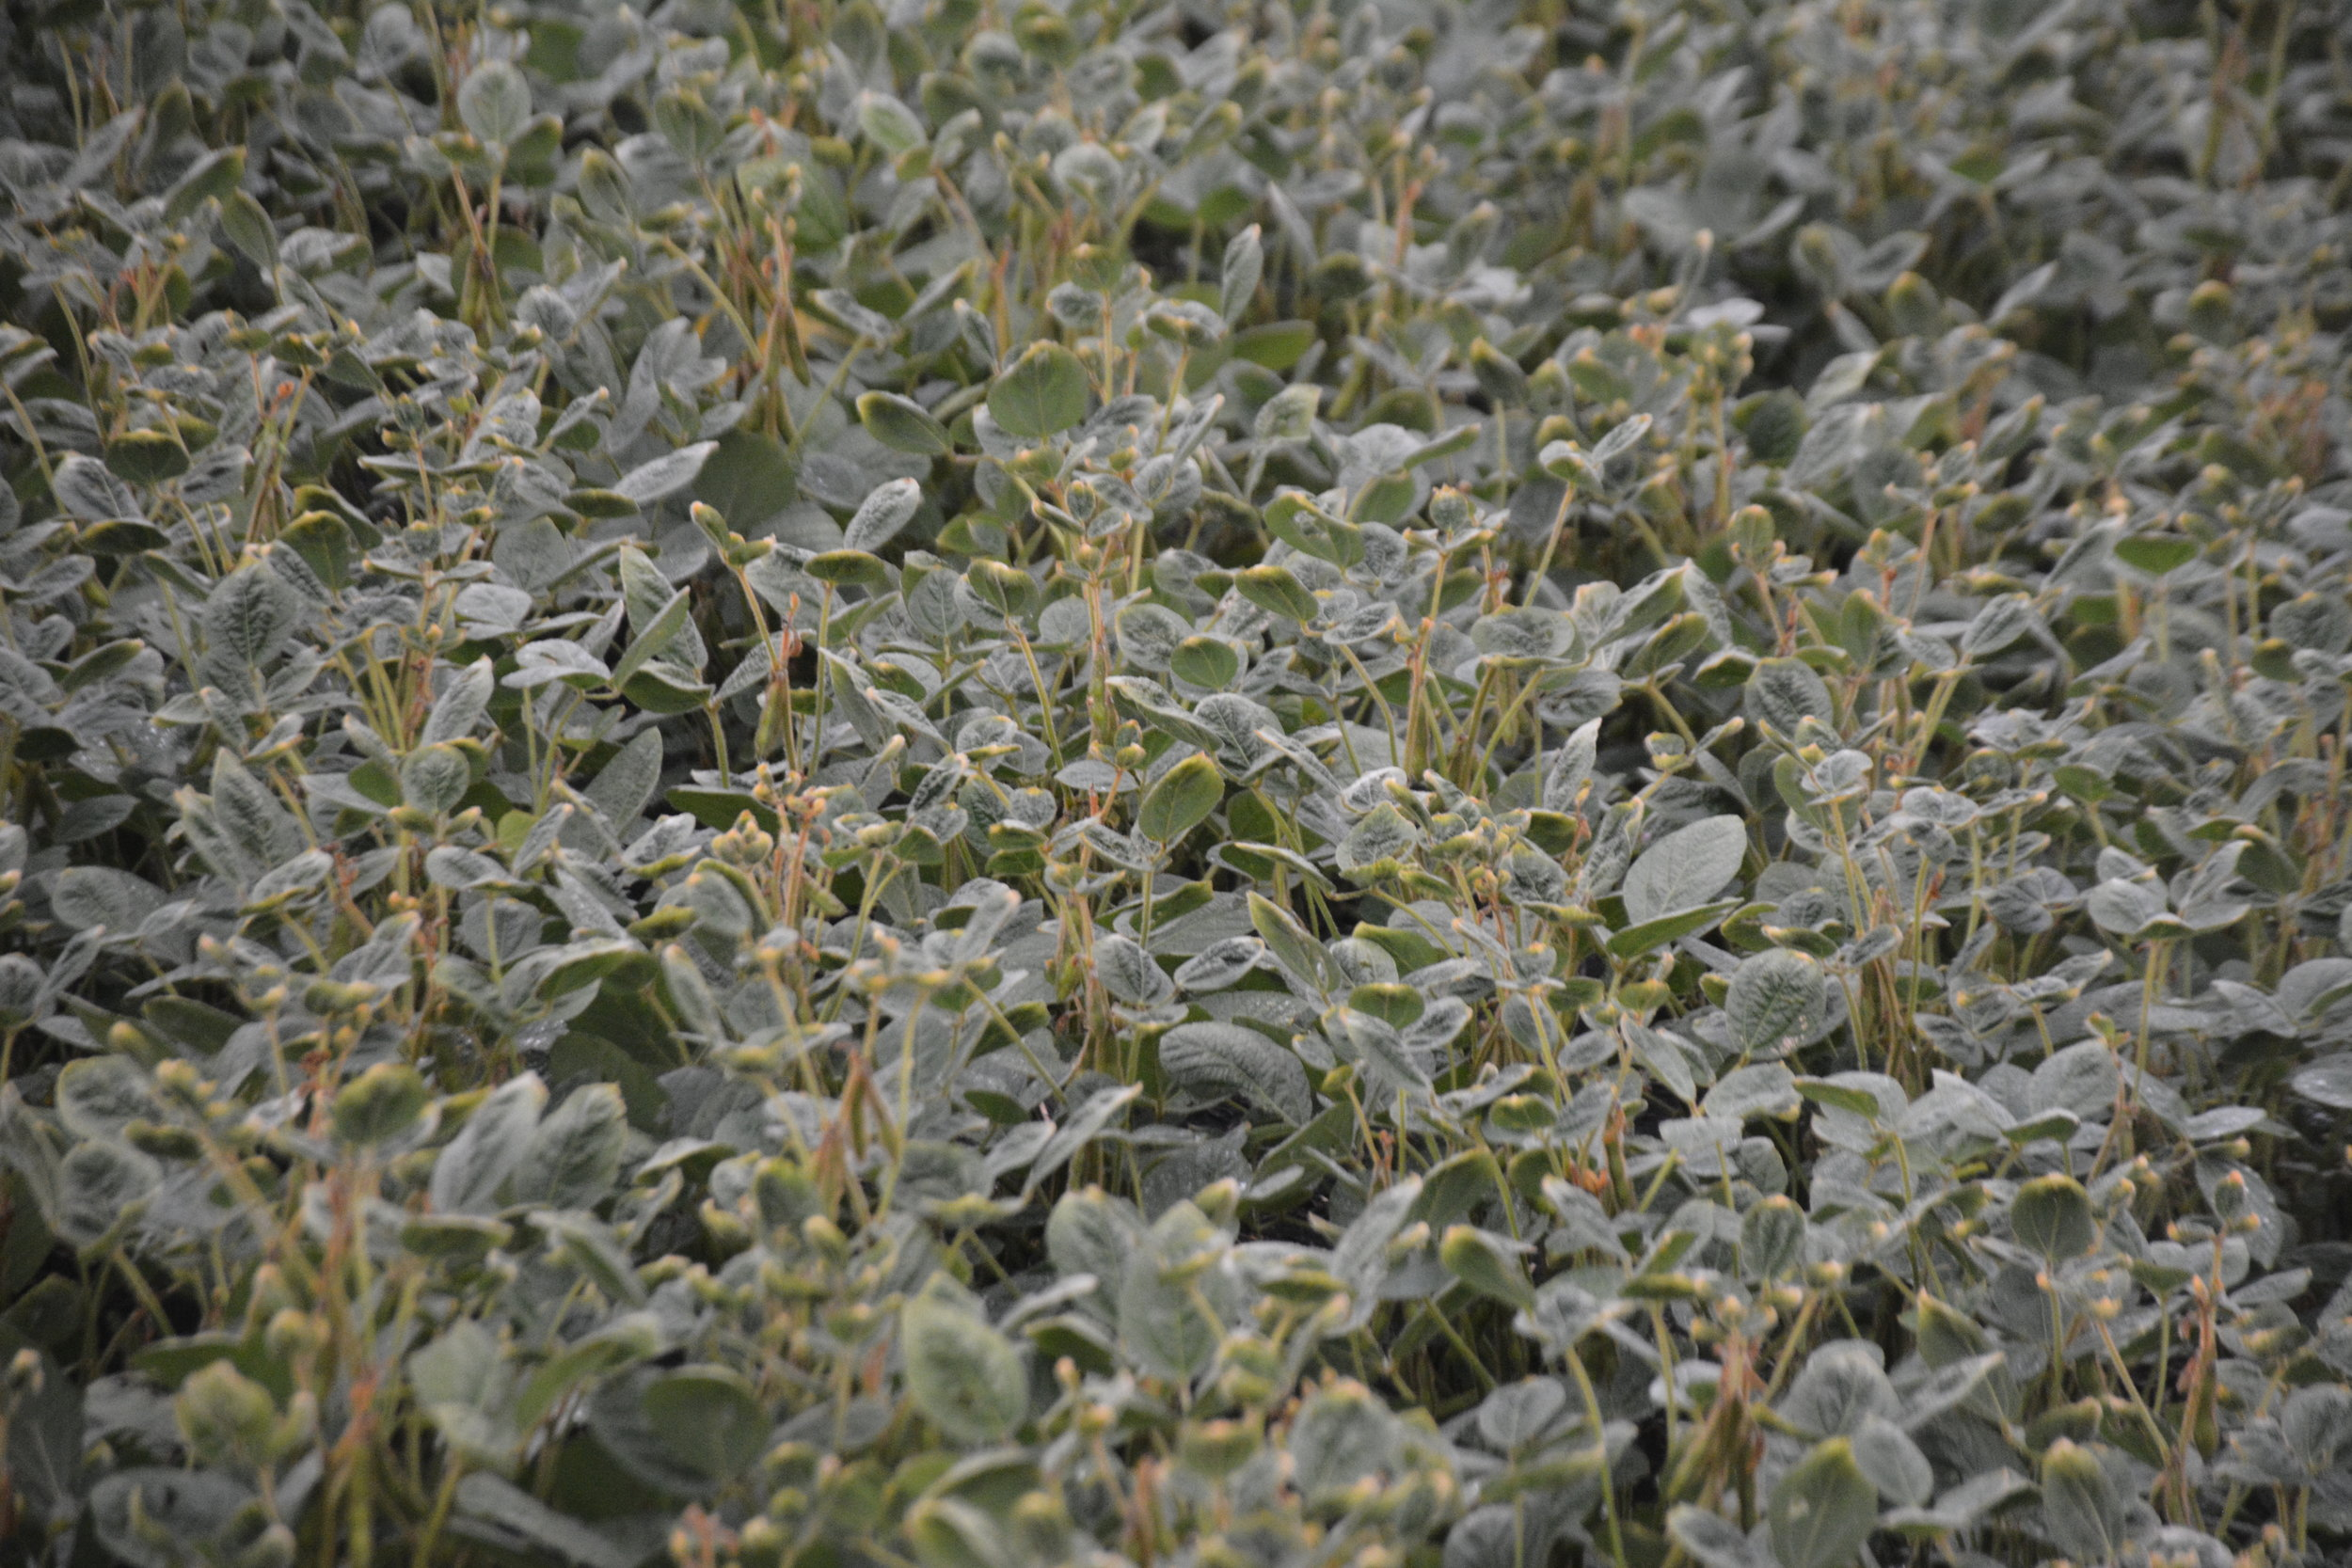 Dicamba injury to a soybean field in South Dakota.